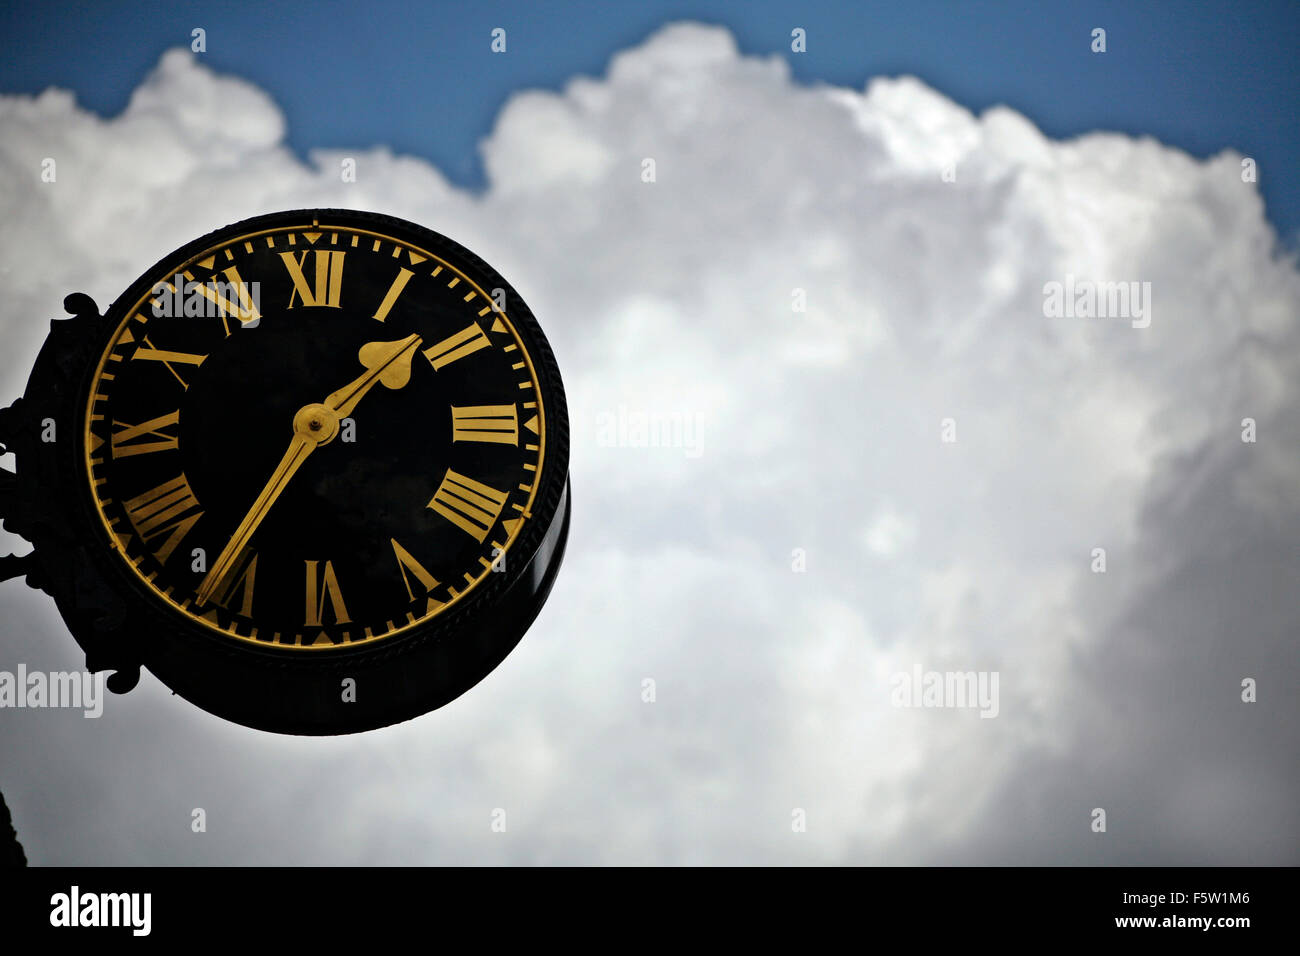 Large black clock face with gold roman numerals against blue sky and clouds - Stock Image